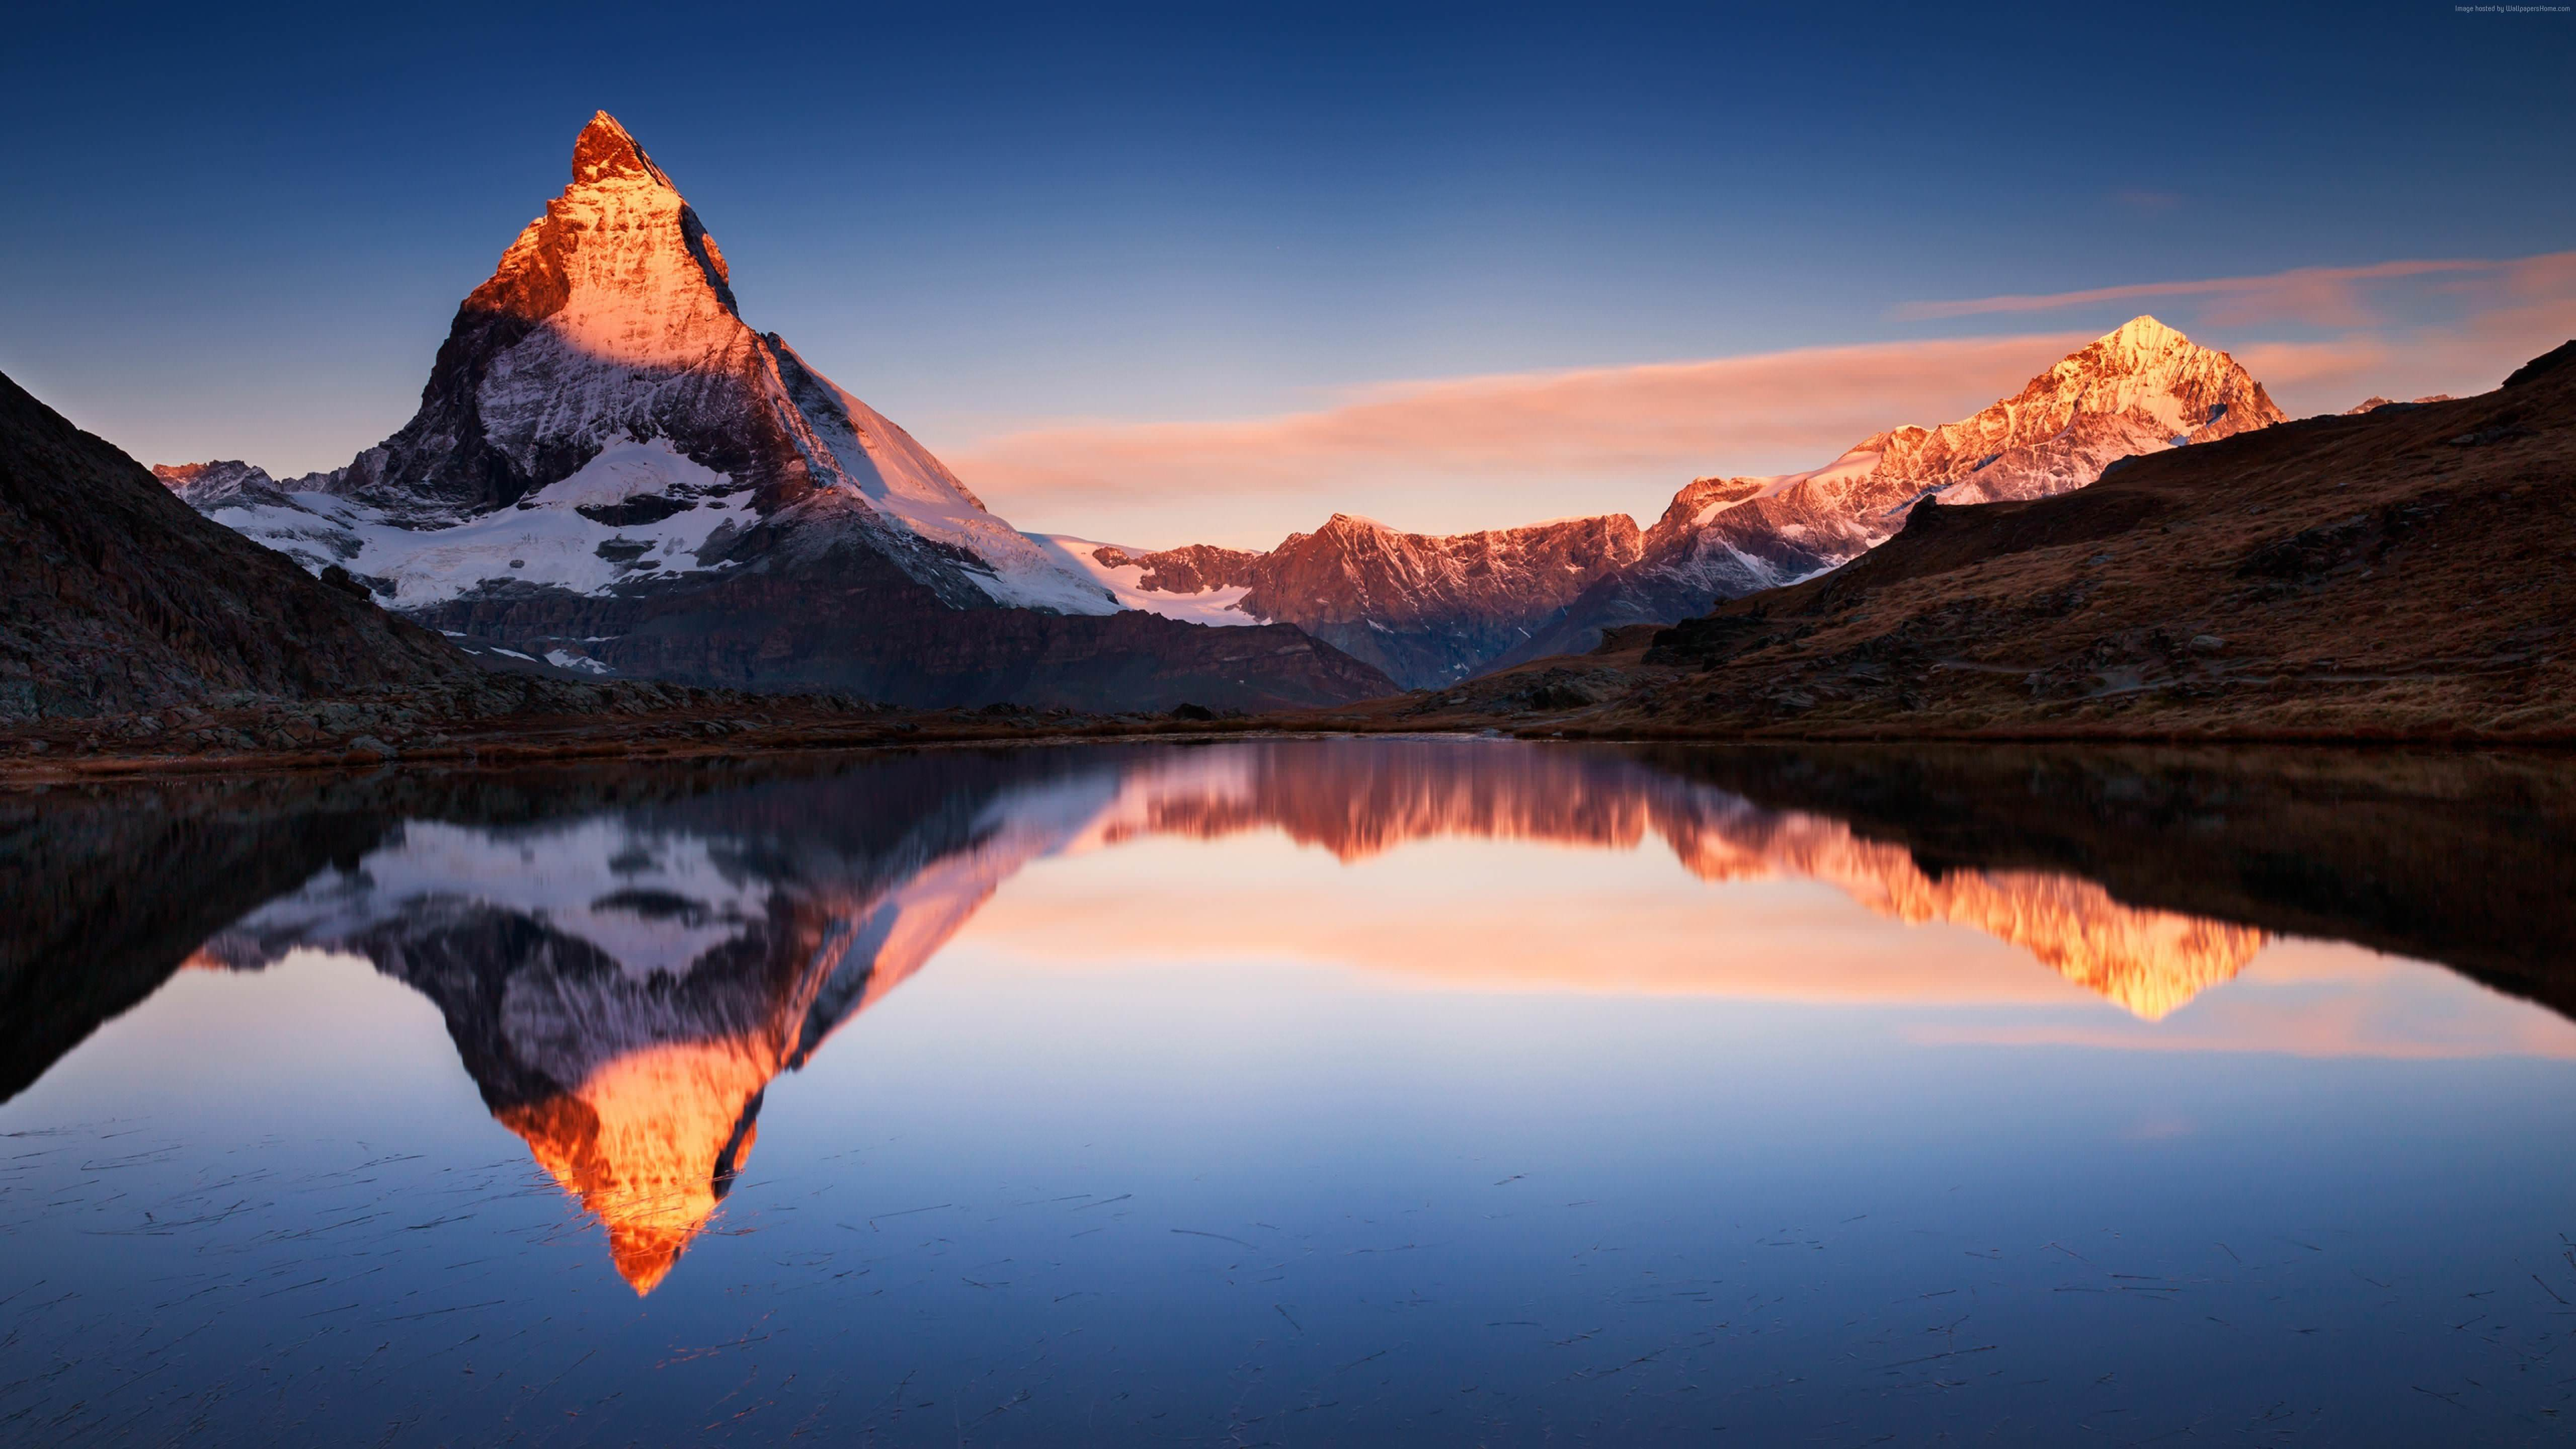 Album My 5k Wallpaper Collection Tags R Wallpapers Reddit Alps Mountain Nature Outdoors Dawn Dusk Red Sky Sunrise Sunset Landscape Scenery